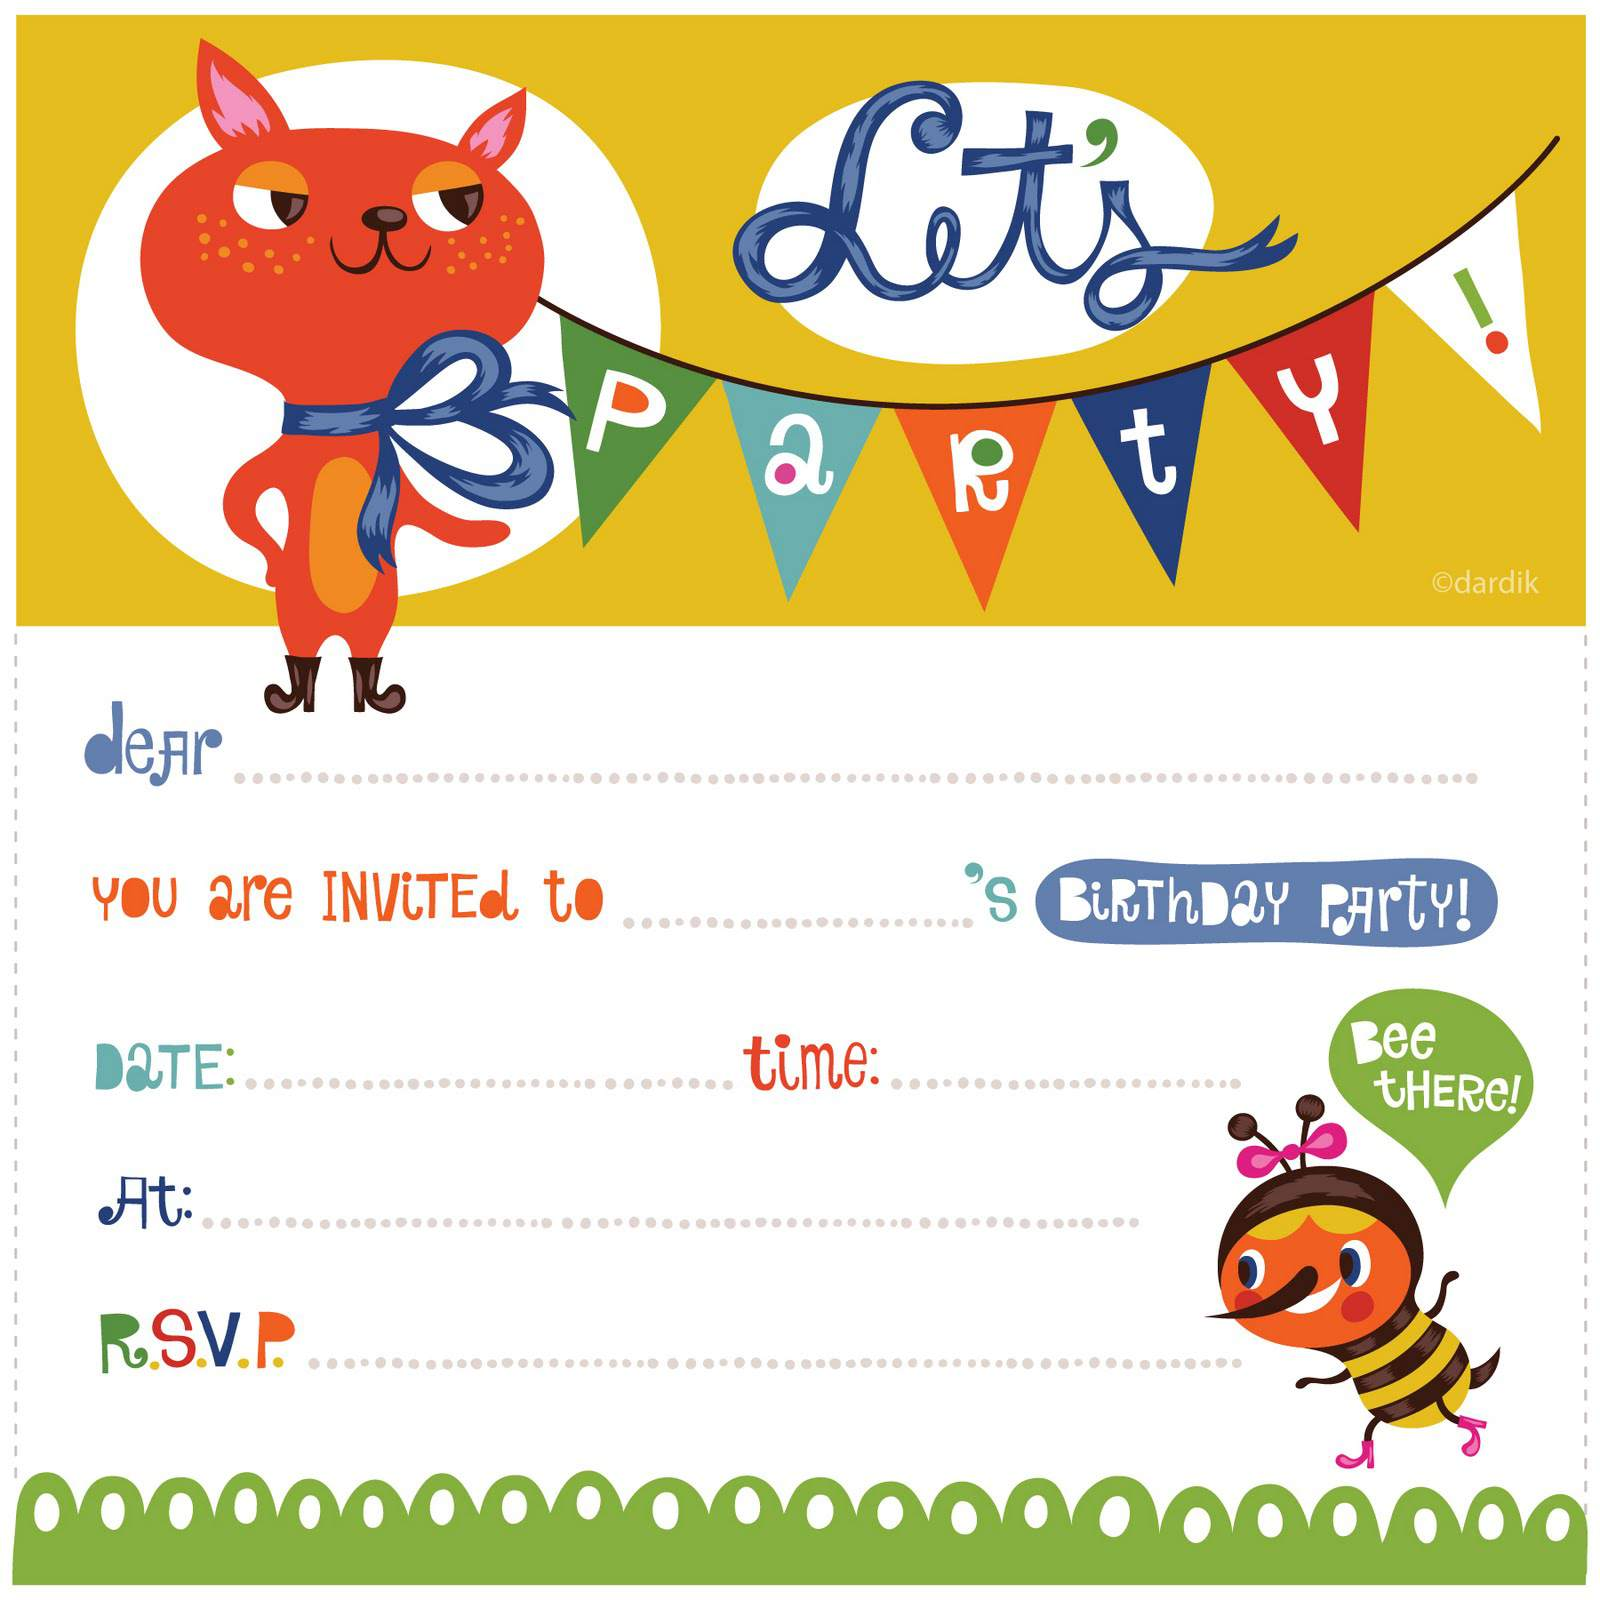 Print birthday invites doritrcatodos print birthday invites filmwisefo